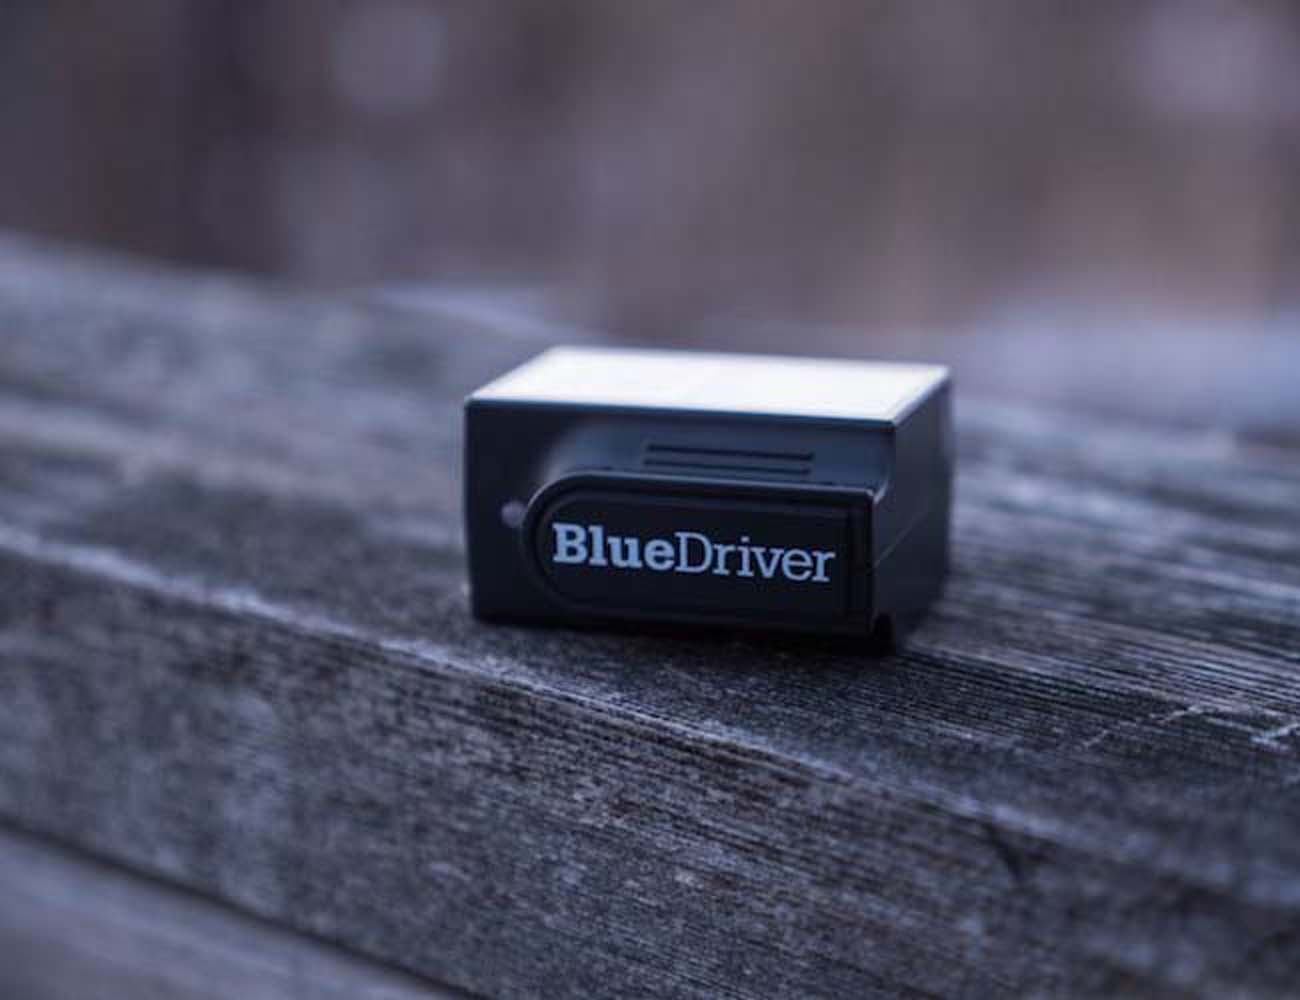 BlueDriver – Bluetooth Professional OBDII Scan Tool for iPhone®, iPad®, Android